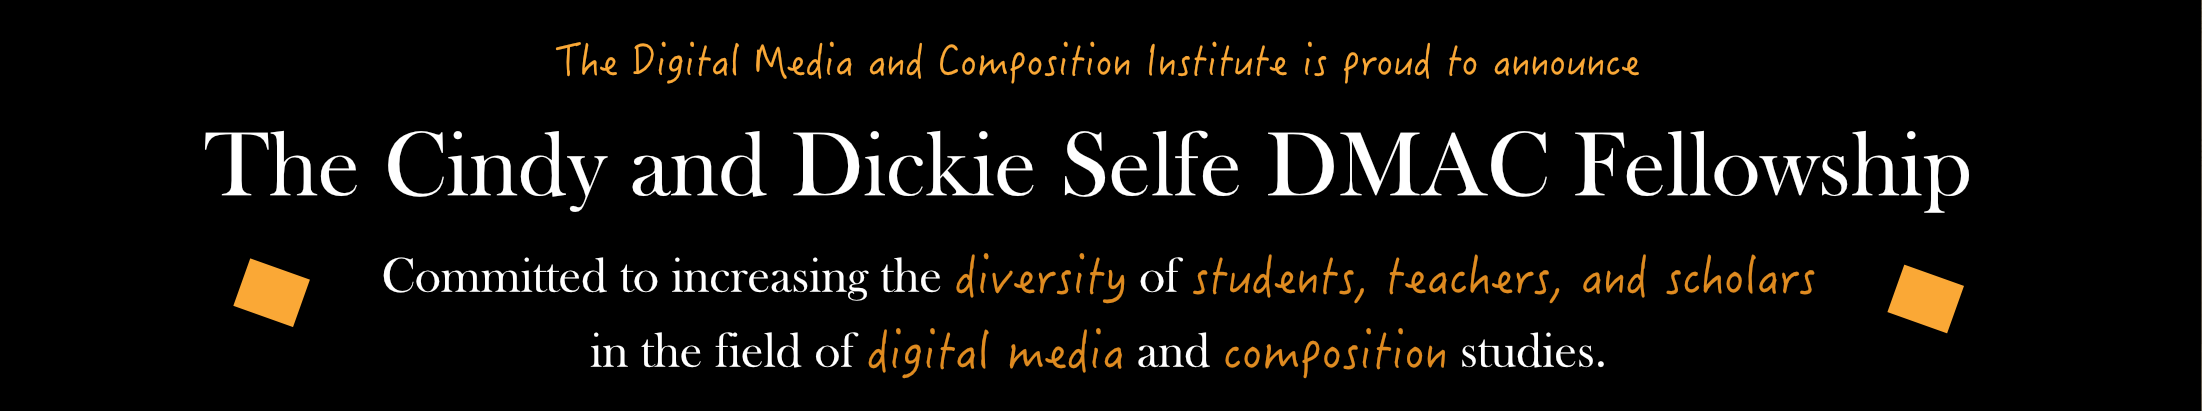 The Cindy and Dickie Selfe DMAC Fellowship